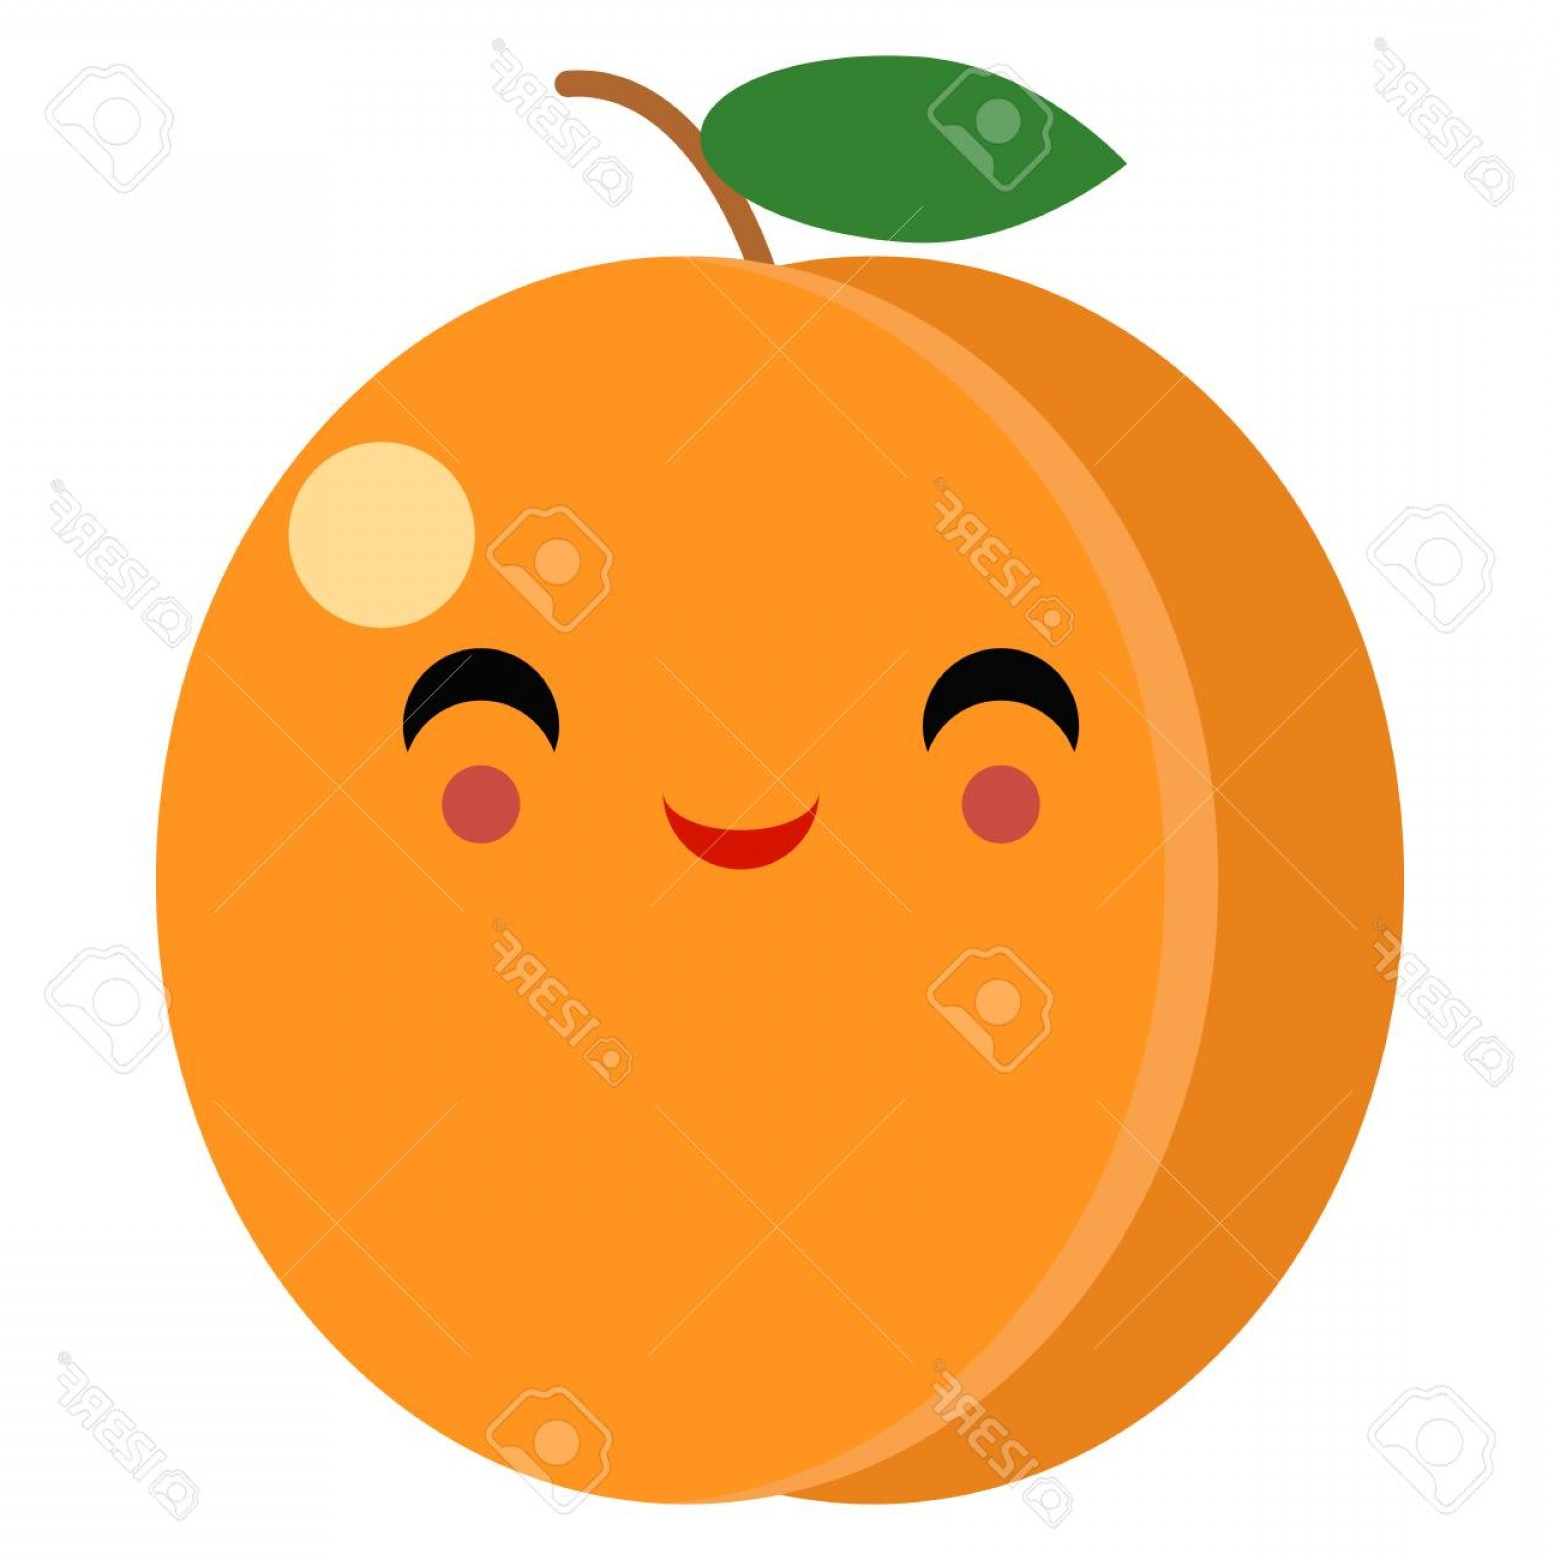 Excited Face Emoji Vector: Photostock Vector Fruit Happy Face Emoji With Smiling Eyes Illustration In Flat Style Design